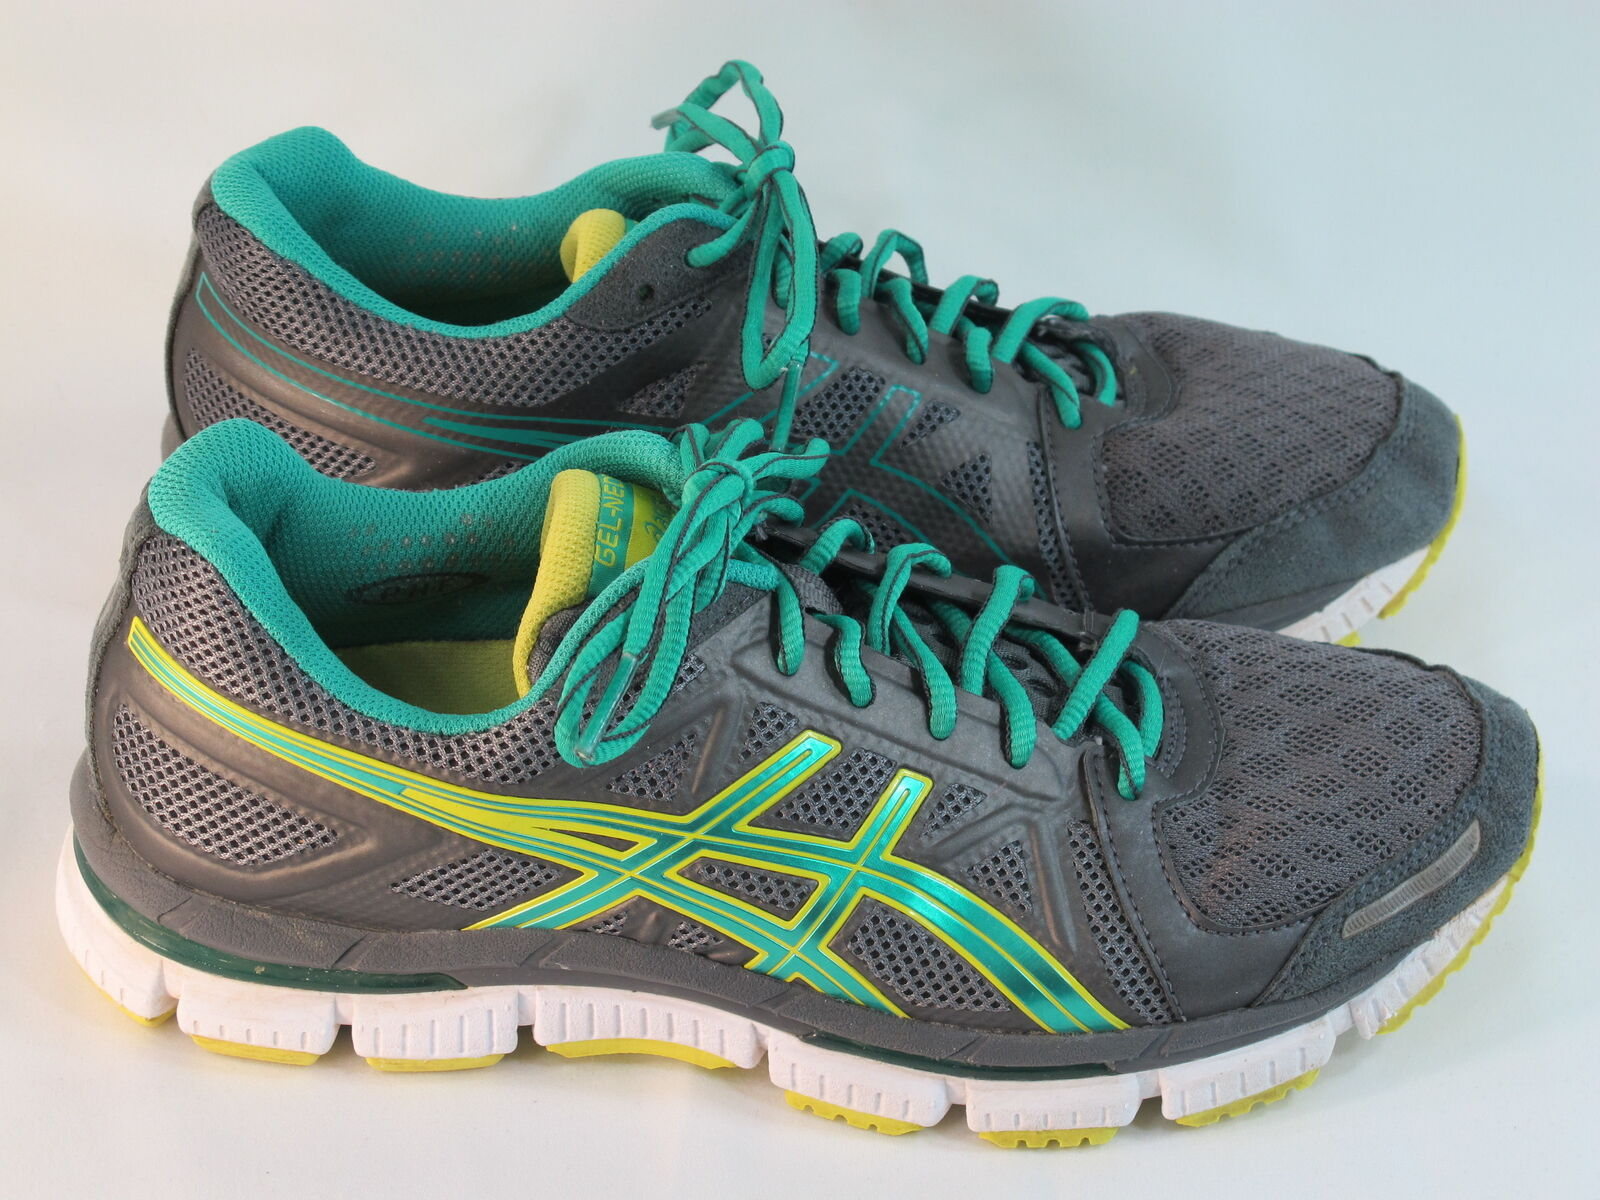 ASICS Gel Neo33 Running Shoes Women's Size 9 US Excellent Plus Condition